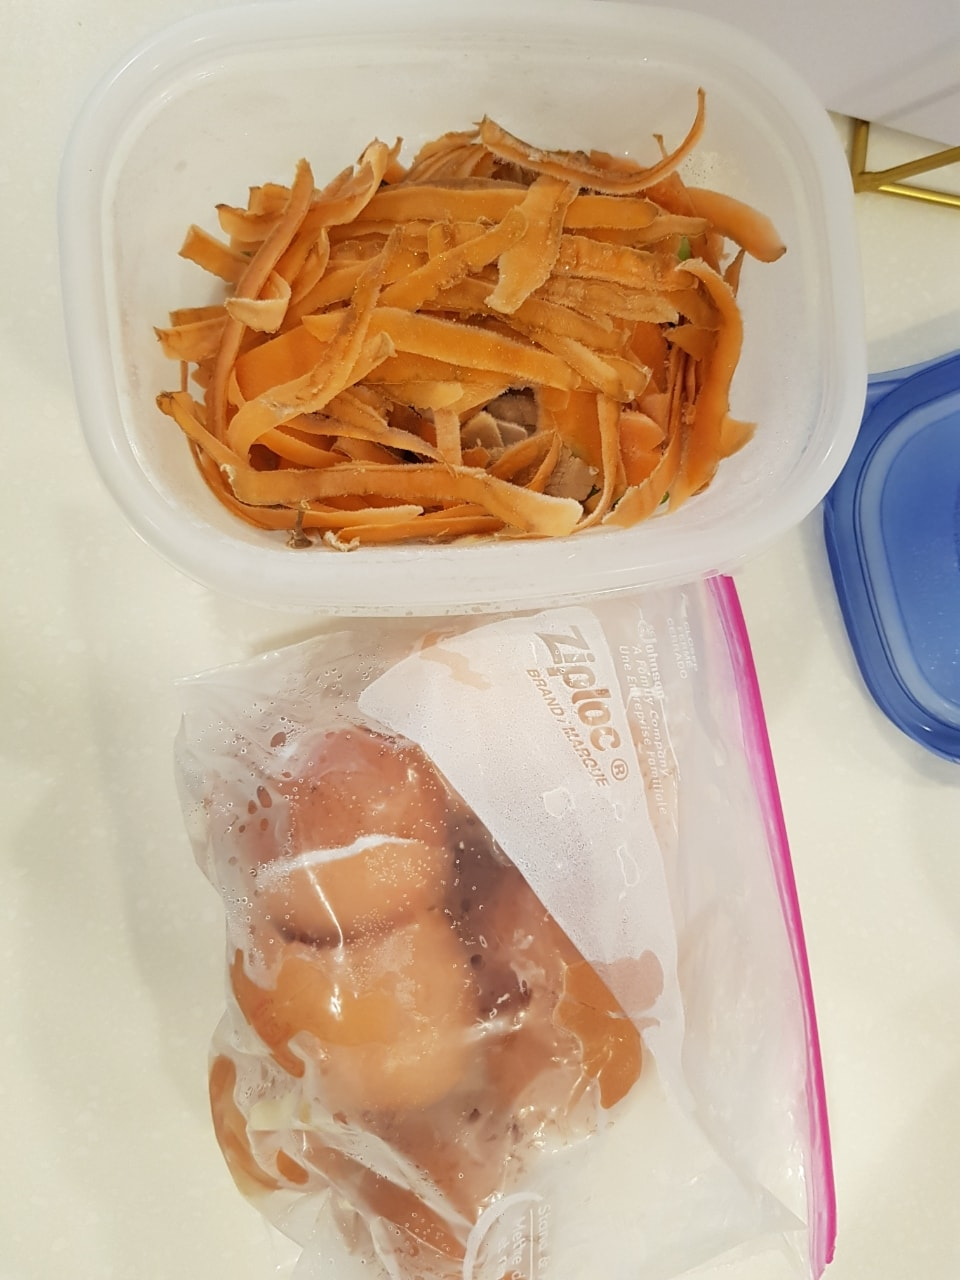 Vegetable and fruit scraps for anyone who is composting